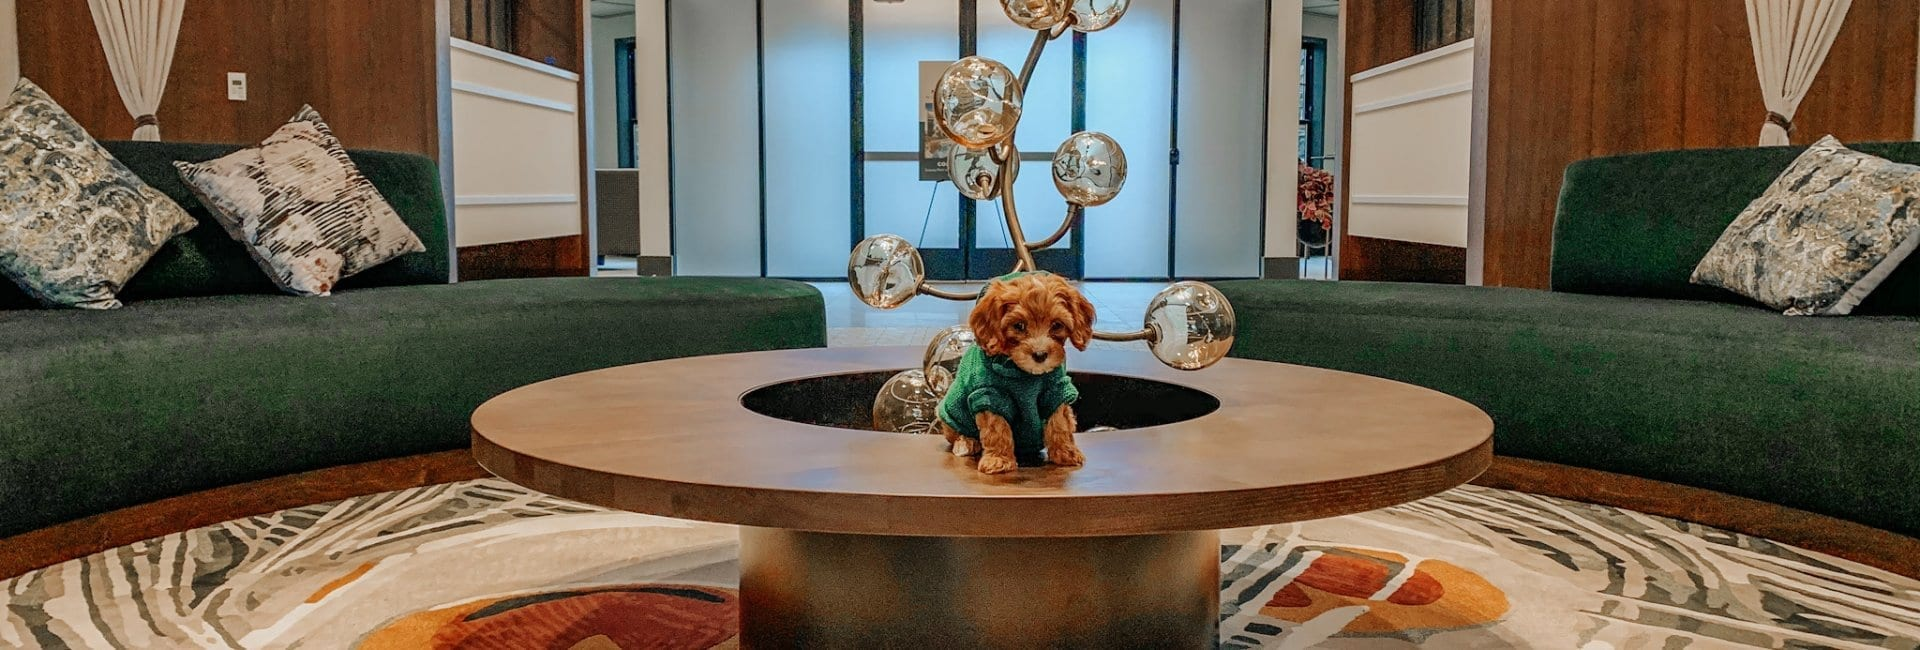 Dog in Carraway Apartments Lobby